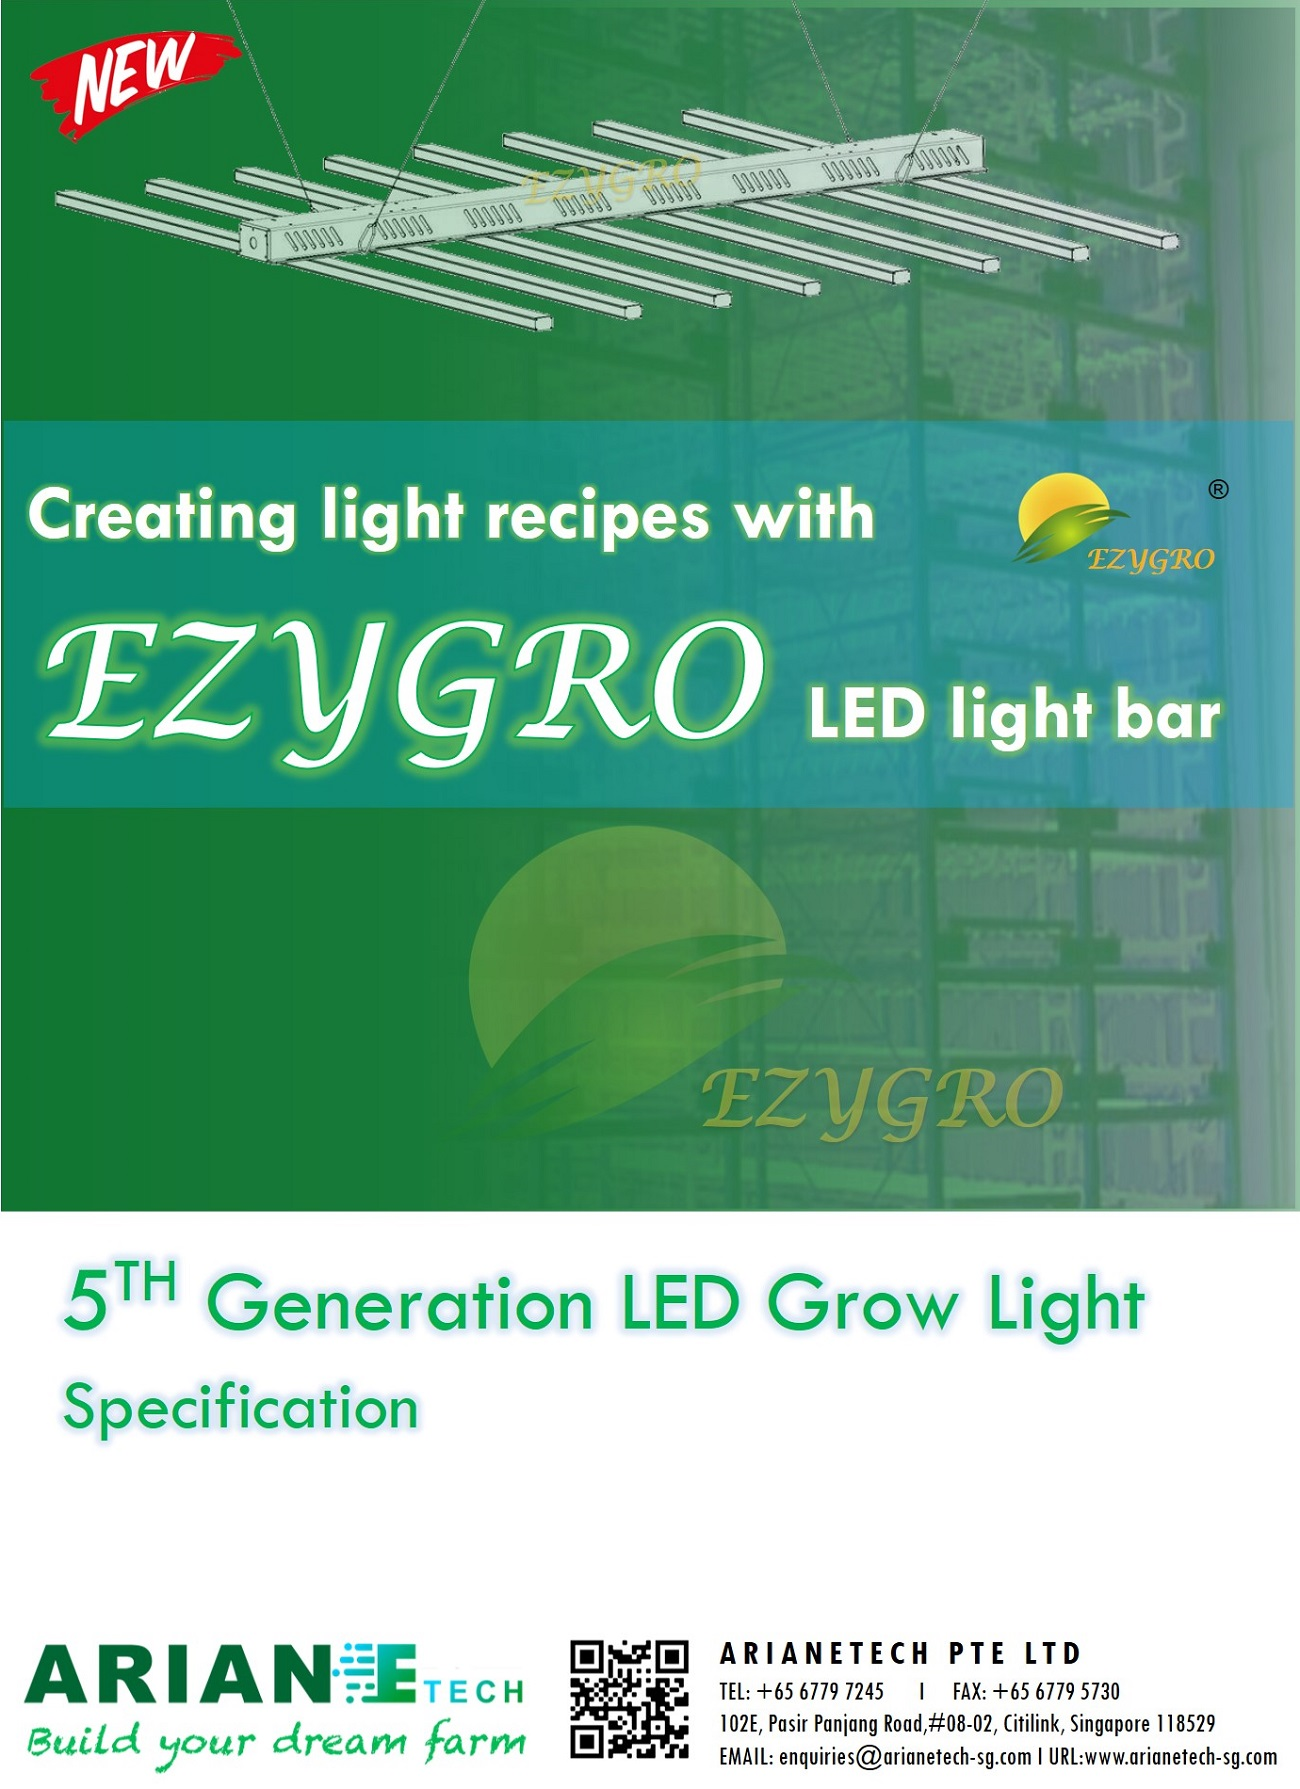 5 generation ezygro led grow light bar for crops in vertical farming 1